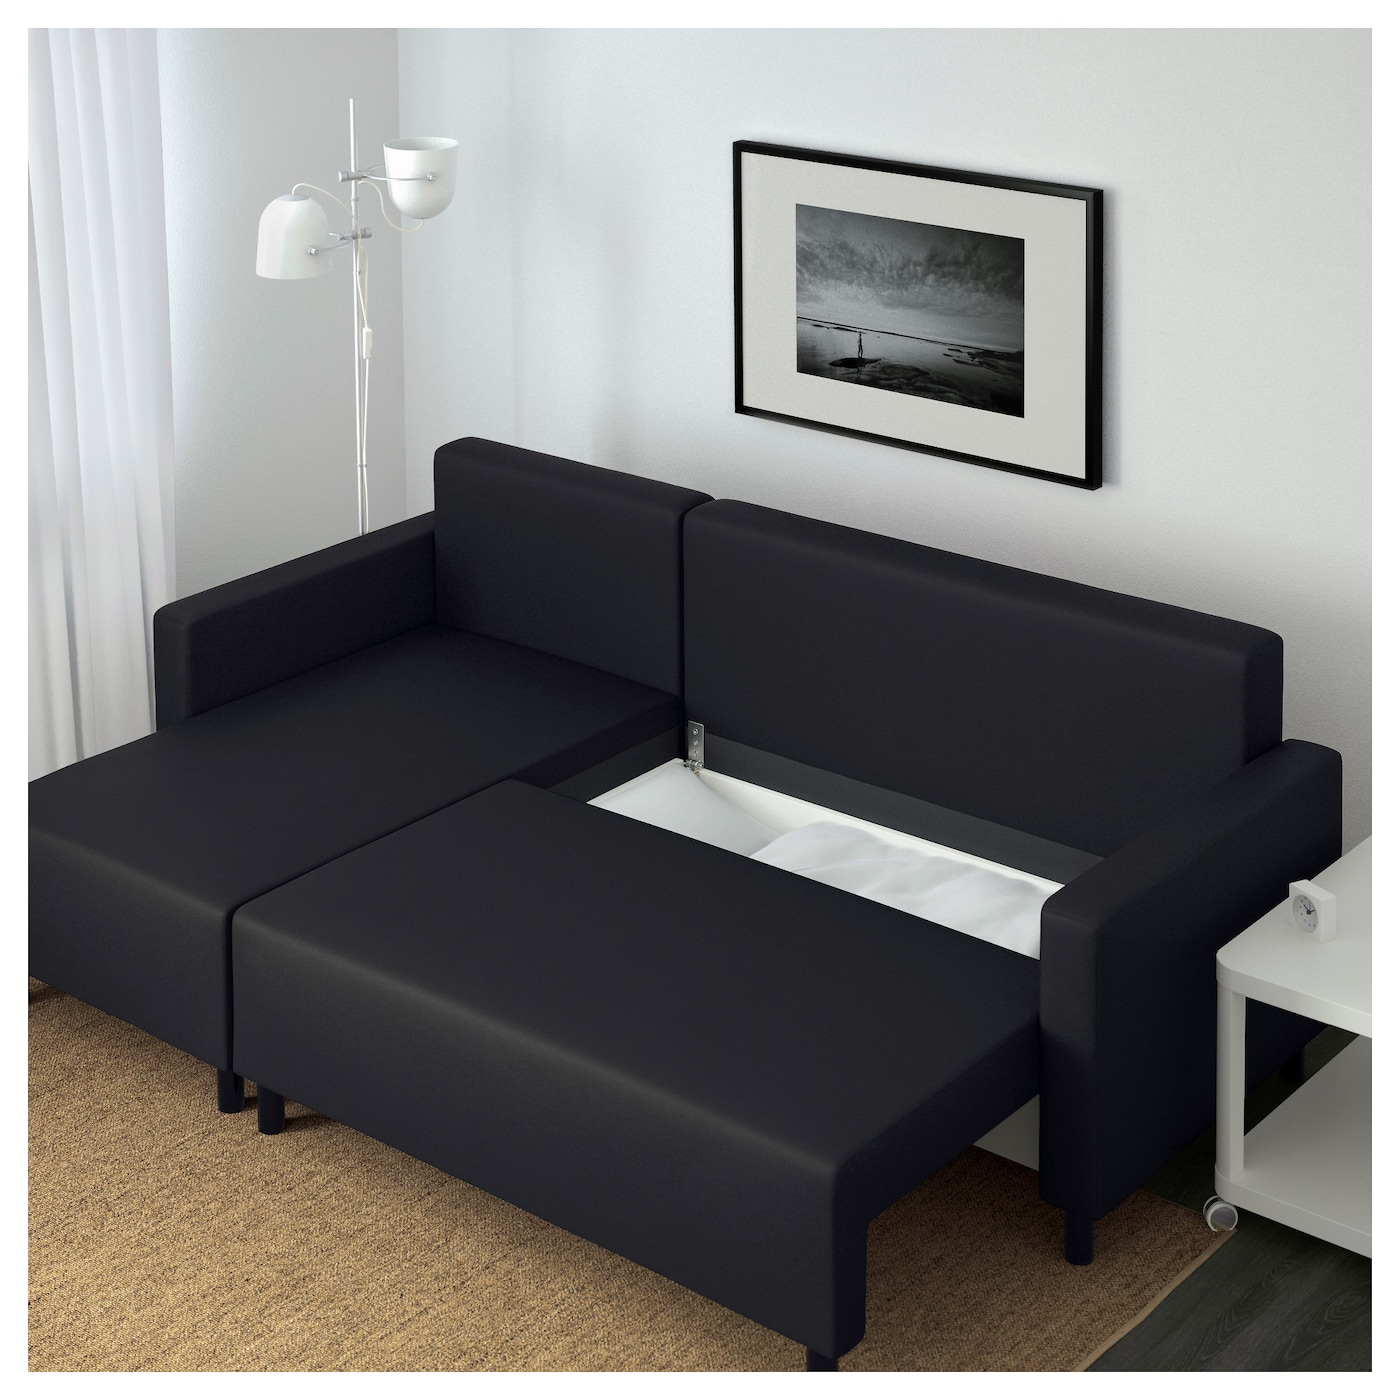 Lugnvik sofa bed with chaise longue gran n black ikea Ikea divan beds